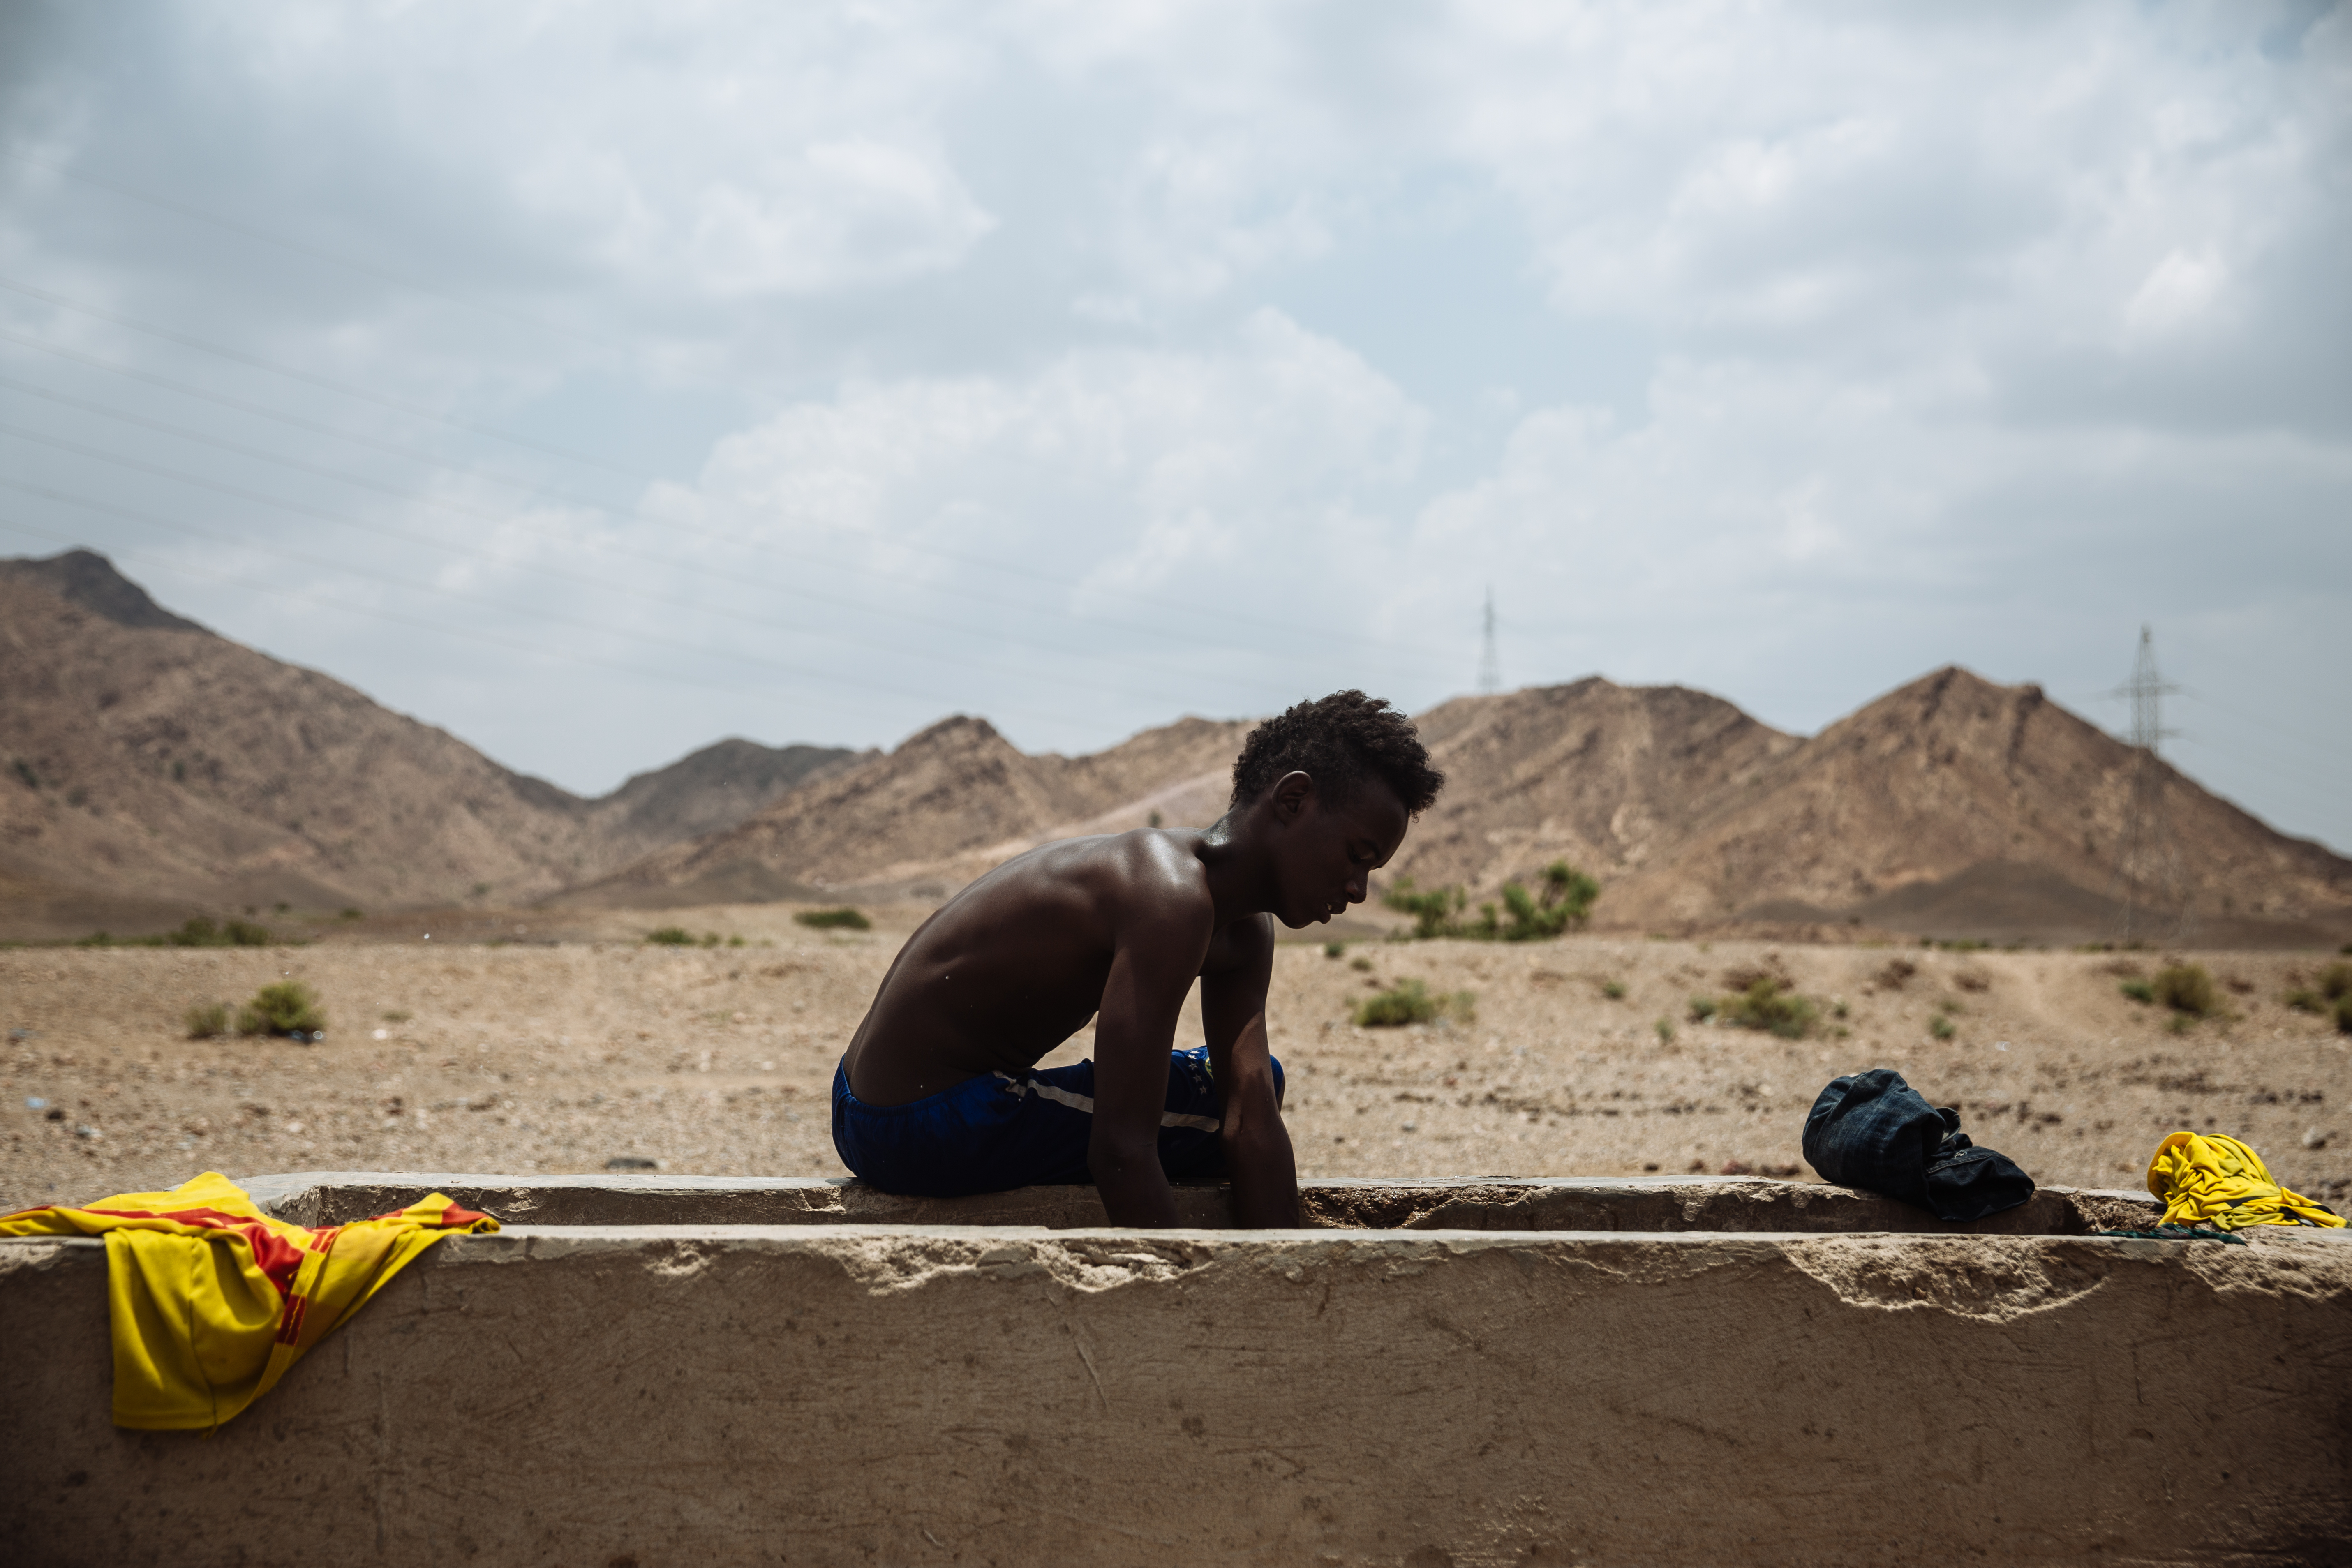 Ahmed washes his clothes at a well in Ali Sabieh. Just 14 years old, he left his village in the Oromo region of Ethiopia to be able to make more money for himself.